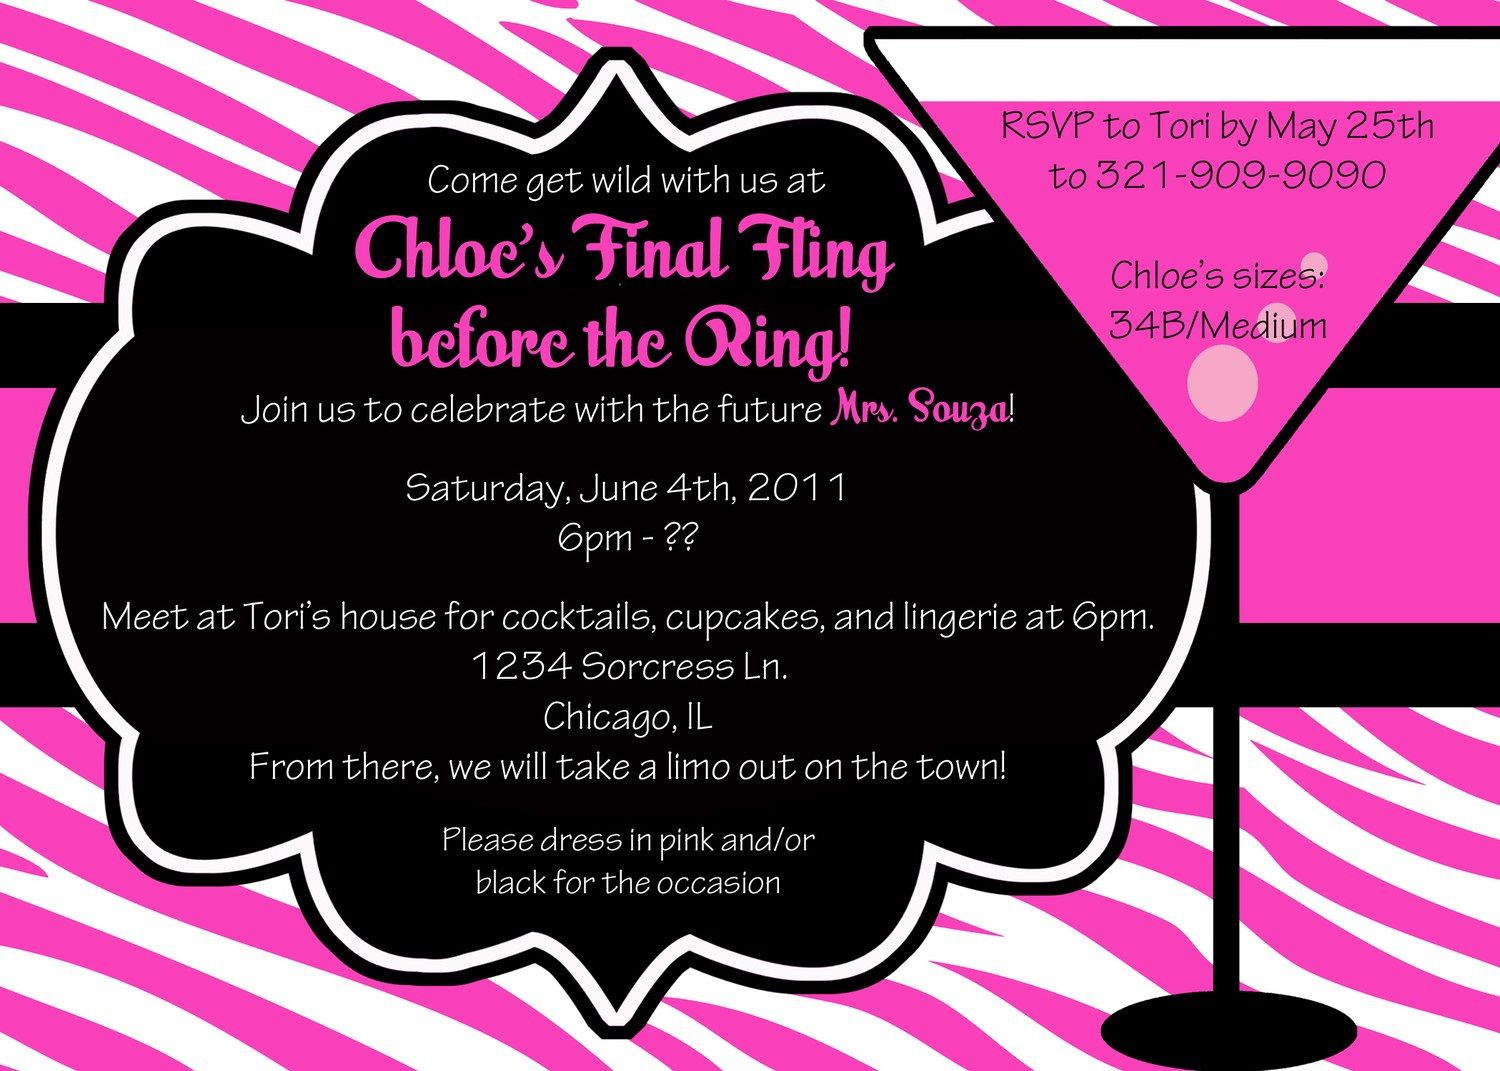 009 Remarkable Bachelorette Party Invitation Template Word Free High Definition Full